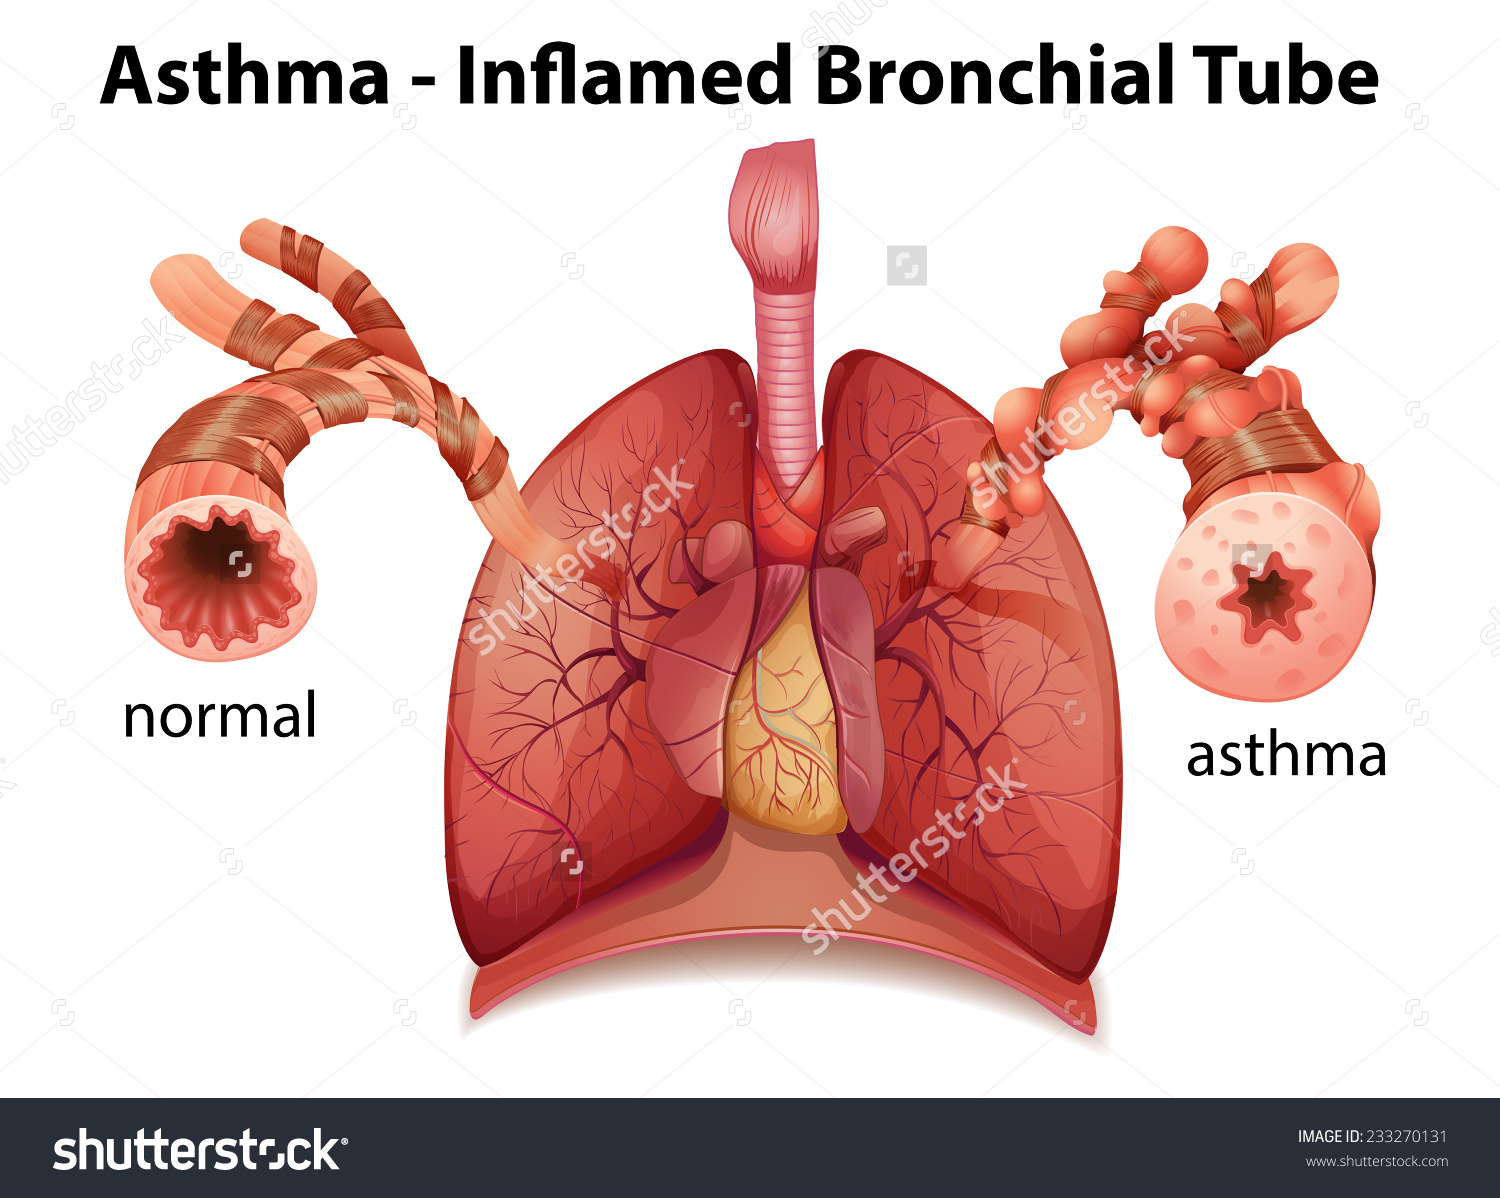 Image Showing Asthmainflamed Bronchial Tube On Stock Vector.